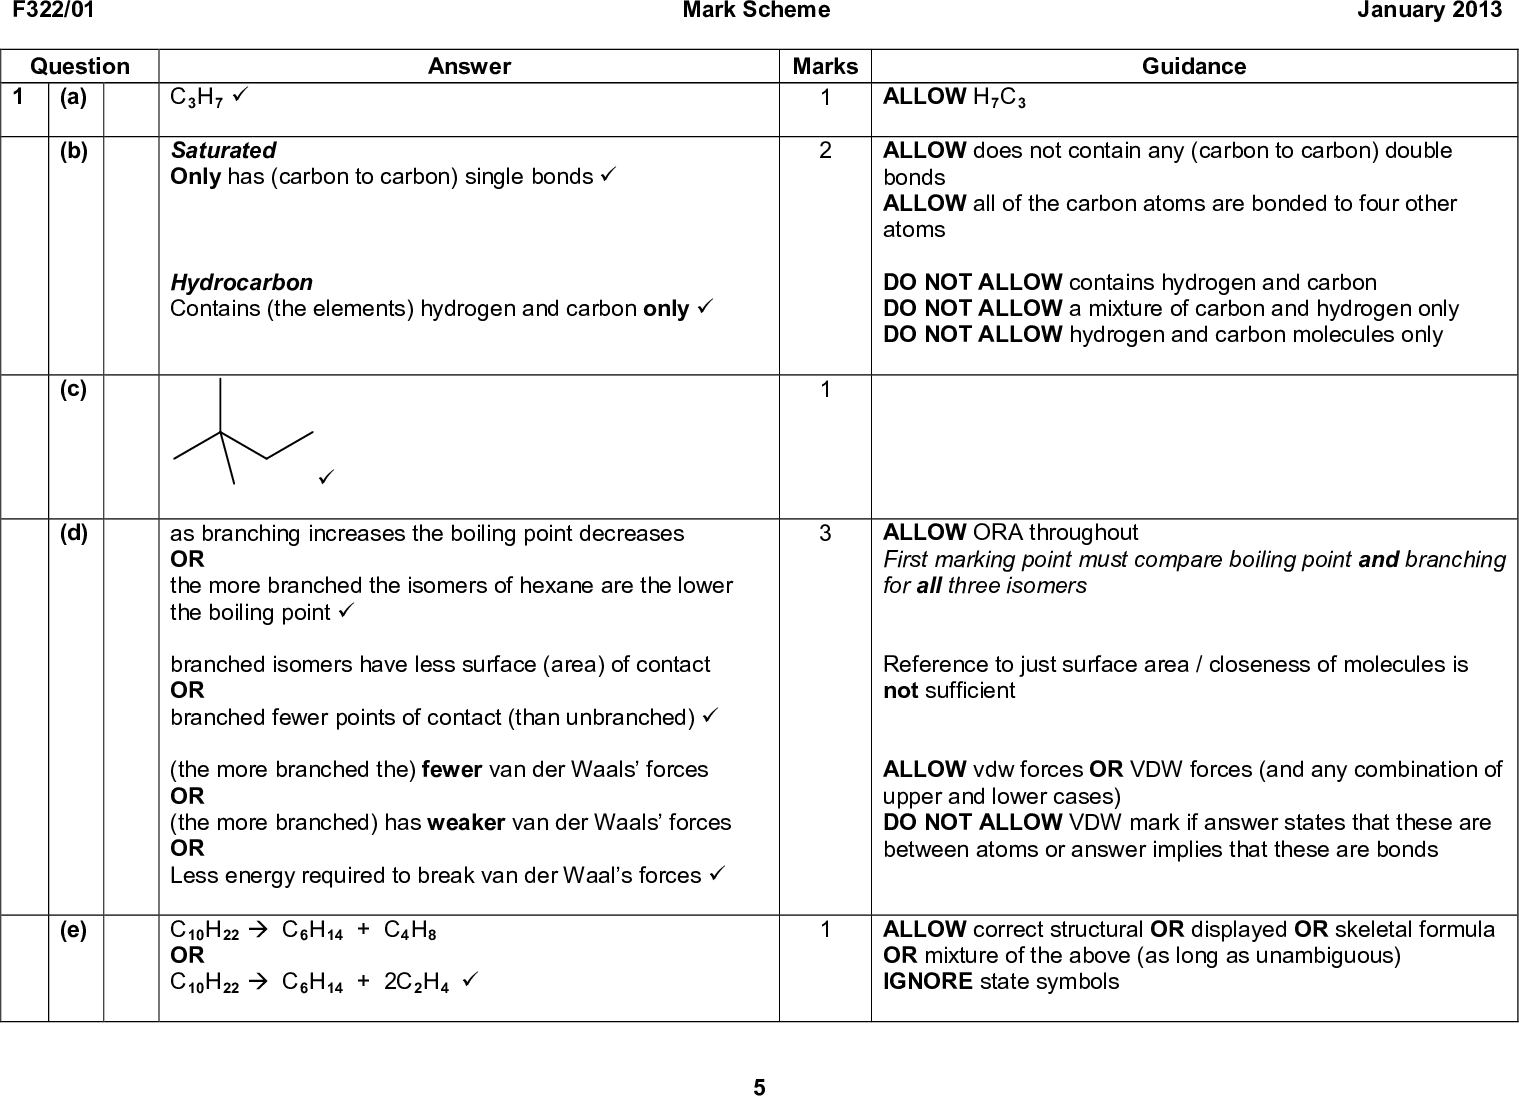 F322/01 Mark Scheme January 2013 Question (a) C3H7 (cid:57) Answer Marks (b) (c) (d) (e) Saturated Only has (carbon to carbon) single bonds (cid:57) Hydrocarbon Contains (the elements) hydrogen and carbon only (cid:57) (cid:57) as branching increases the boiling point decreases OR the more branched the isomers of hexane are the lower the boiling point (cid:57) branched isomers have less surface (area) of contact OR branched fewer points of contact (than unbranched) (cid:57) (the more branched the) fewer van der Waals forces OR (the more branched) has weaker van der Waals forces OR Less energy required to break van der Waals forces (cid:57) C10H22 (cid:198) C6H14 + C4H8 OR C10H22 (cid:198) C6H14 + 2C2H4 (cid:57) Guidance ALLOW H7C3 ALLOW does not contain any (carbon to carbon) double bonds ALLOW all of the carbon atoms are bonded to four other atoms DO NOT ALLOW contains hydrogen and carbon DO NOT ALLOW a mixture of carbon and hydrogen only DO NOT ALLOW hydrogen and carbon molecules only ALLOW ORA throughout First marking point must compare boiling point and branching for all three isomers Reference to just surface area / closeness of molecules is not sufficient ALLOW vdw forces OR VDW forces (and any combination of upper and lower cases) DO NOT ALLOW VDW mark if answer states that these are between atoms or answer implies that these are bonds ALLOW correct structural OR displayed OR skeletal formula OR mixture of the above (as long as unambiguous) IGNORE state symbols<br />  F322/01 Mark Scheme January 2013 Question Answer (f) (i) C4H10 + 2Cl2 (cid:198) C4H8Cl2 + 2HCl (cid:57) (ii) Isomer 1 Correct displayed formula eg: Isomer 2 1,3-dichlorobutane (cid:57) Cl Cl (cid:57) (g) (i) covalent bond breaking (cid:57) one electron (from the bond pair) goes to each atom OR makes (two) radicals (cid:57) (ii) Cl + C4H9Cl (cid:198) C4H8Cl + HCl (cid:57) C4H8Cl + Cl2 (cid:198) C4H8Cl2 + Cl (cid:57) C4H10 + 4O2 (cid:198) 4CO + 5H2O OR C4H10 + 2O2 (cid:198) 4C + 5H2O (cid:57) Mark